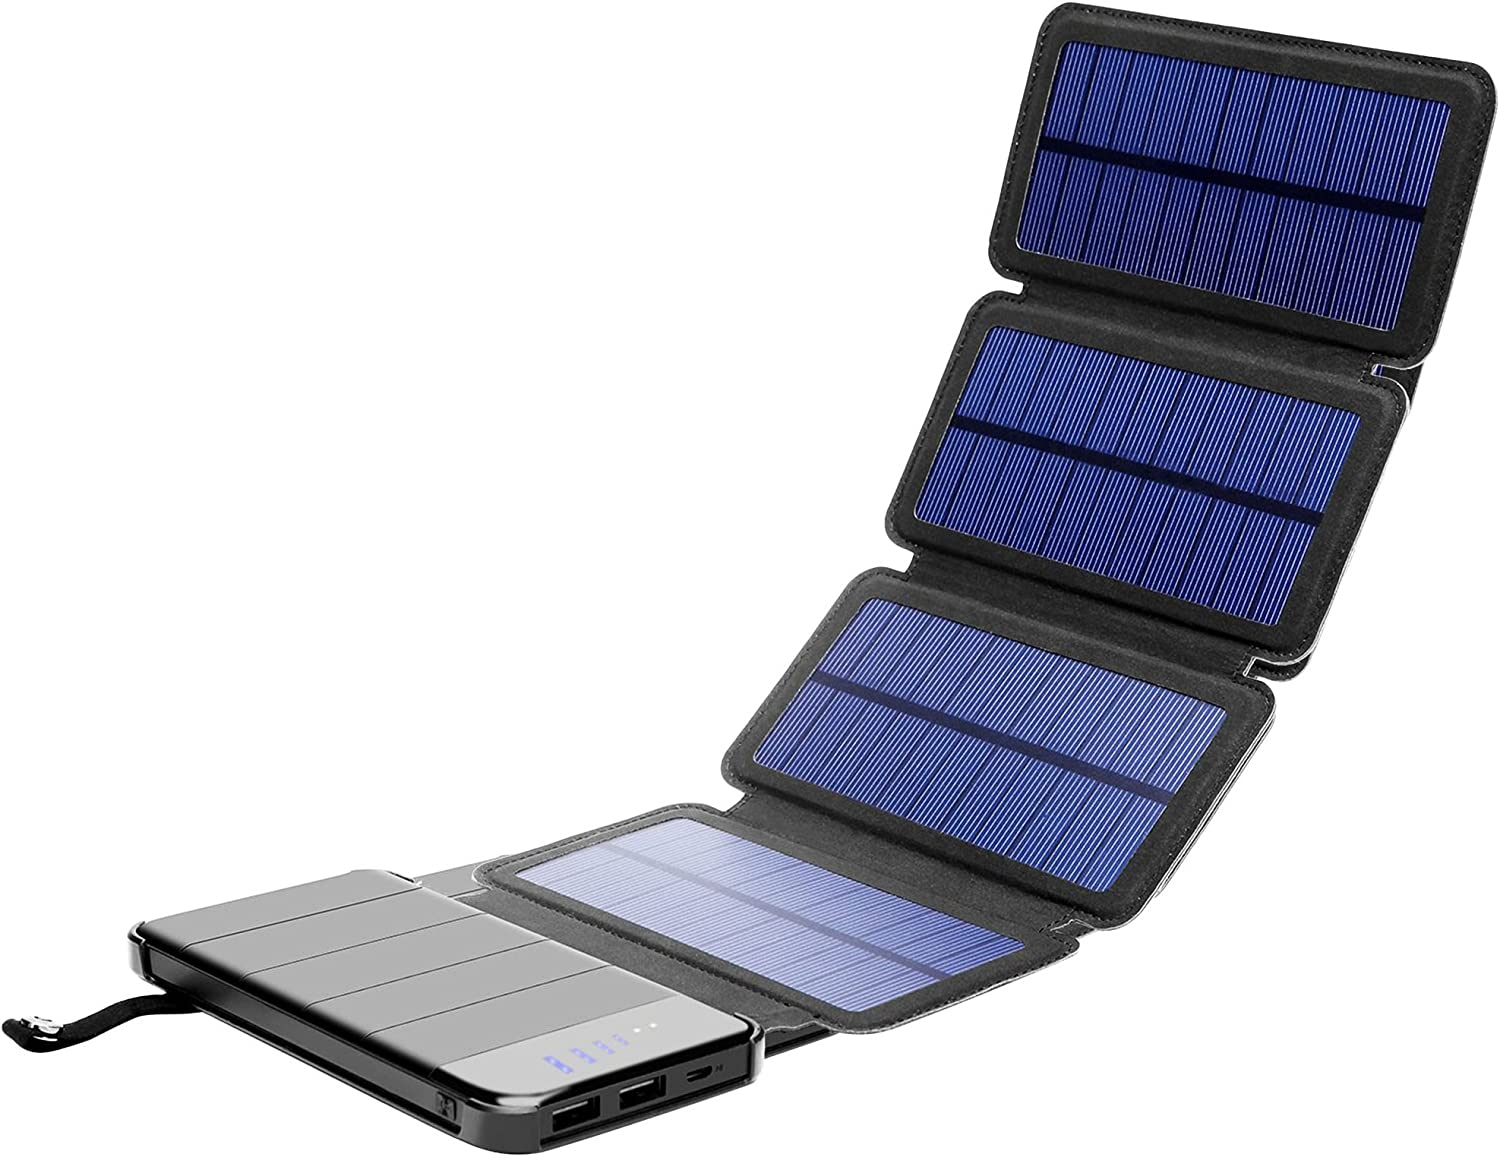 Solar Phone Indefinitely Charger Soldering 10.000mAh i Power Bank-Portable Smartphone